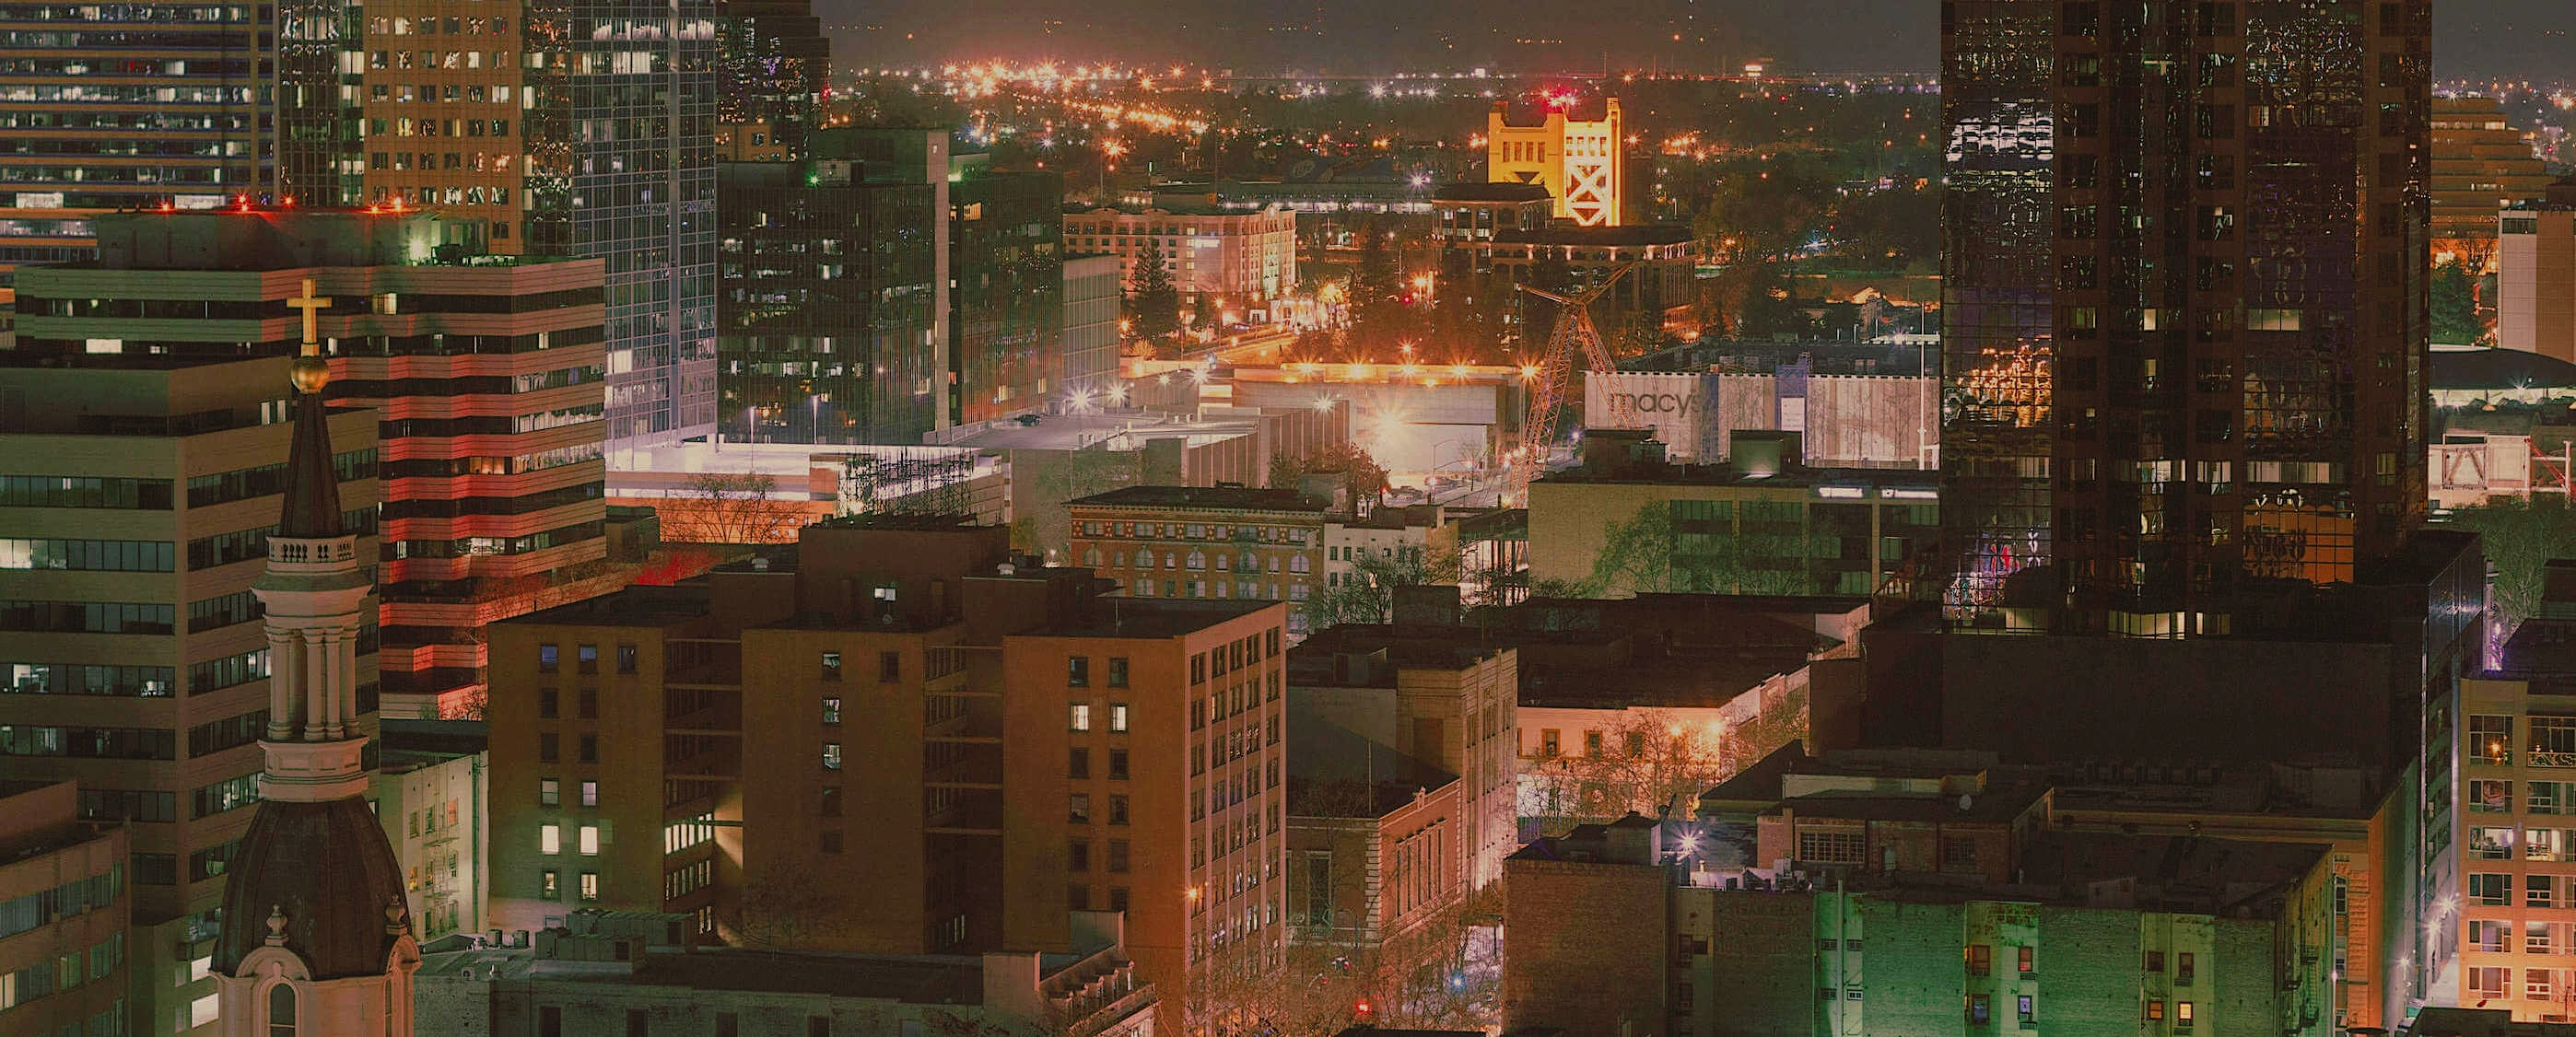 Downtown from the Sheraton-551839-edited.jpg